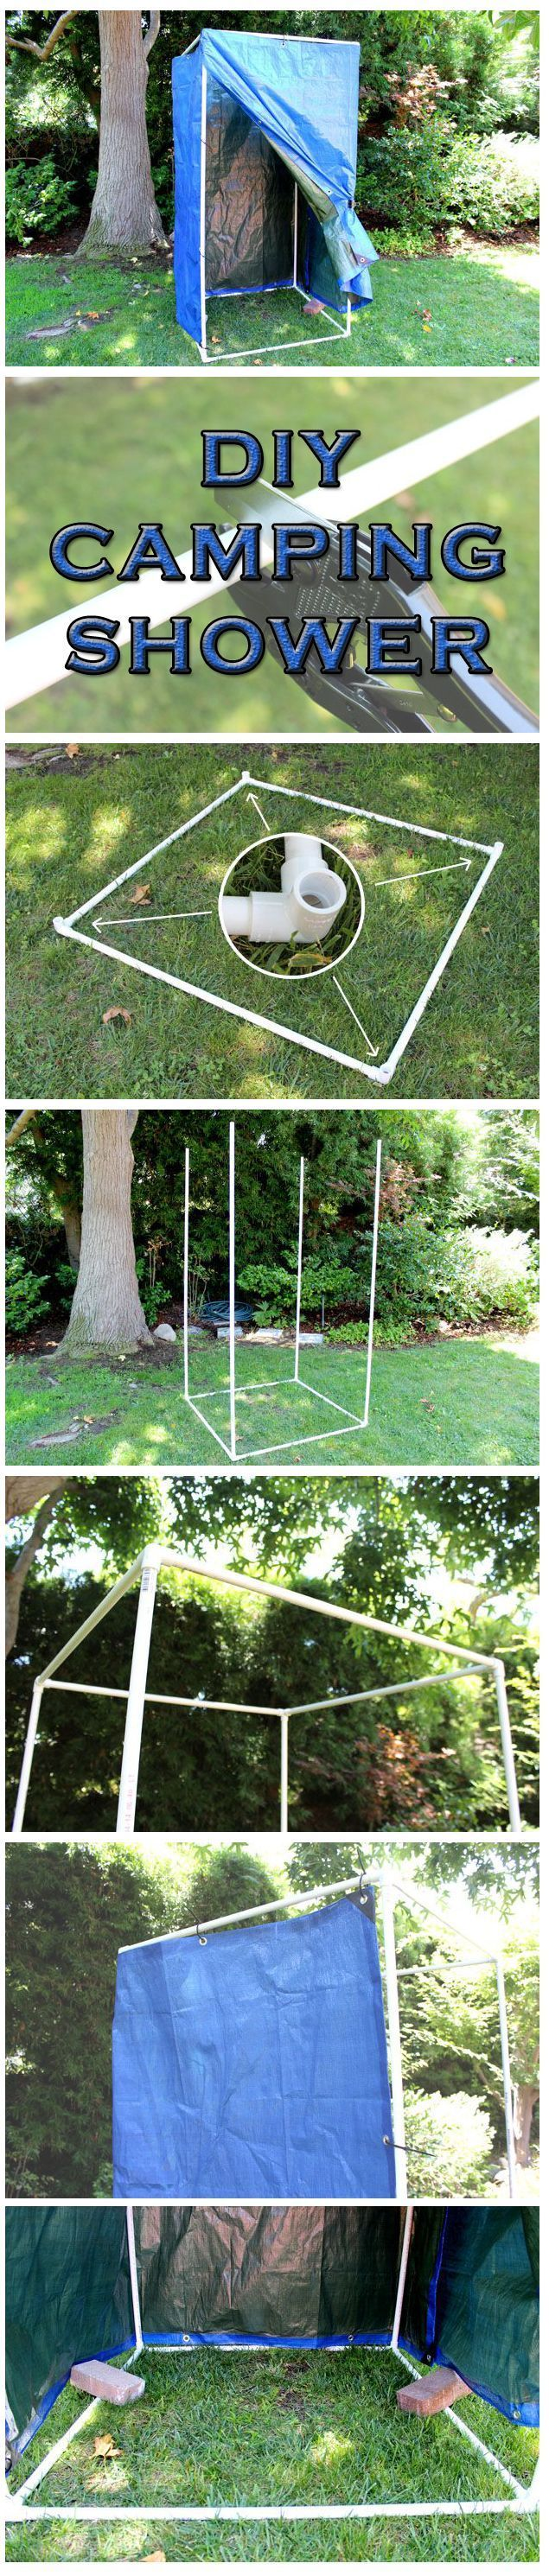 How to Make a Homemade Camping Shower eHow Camping